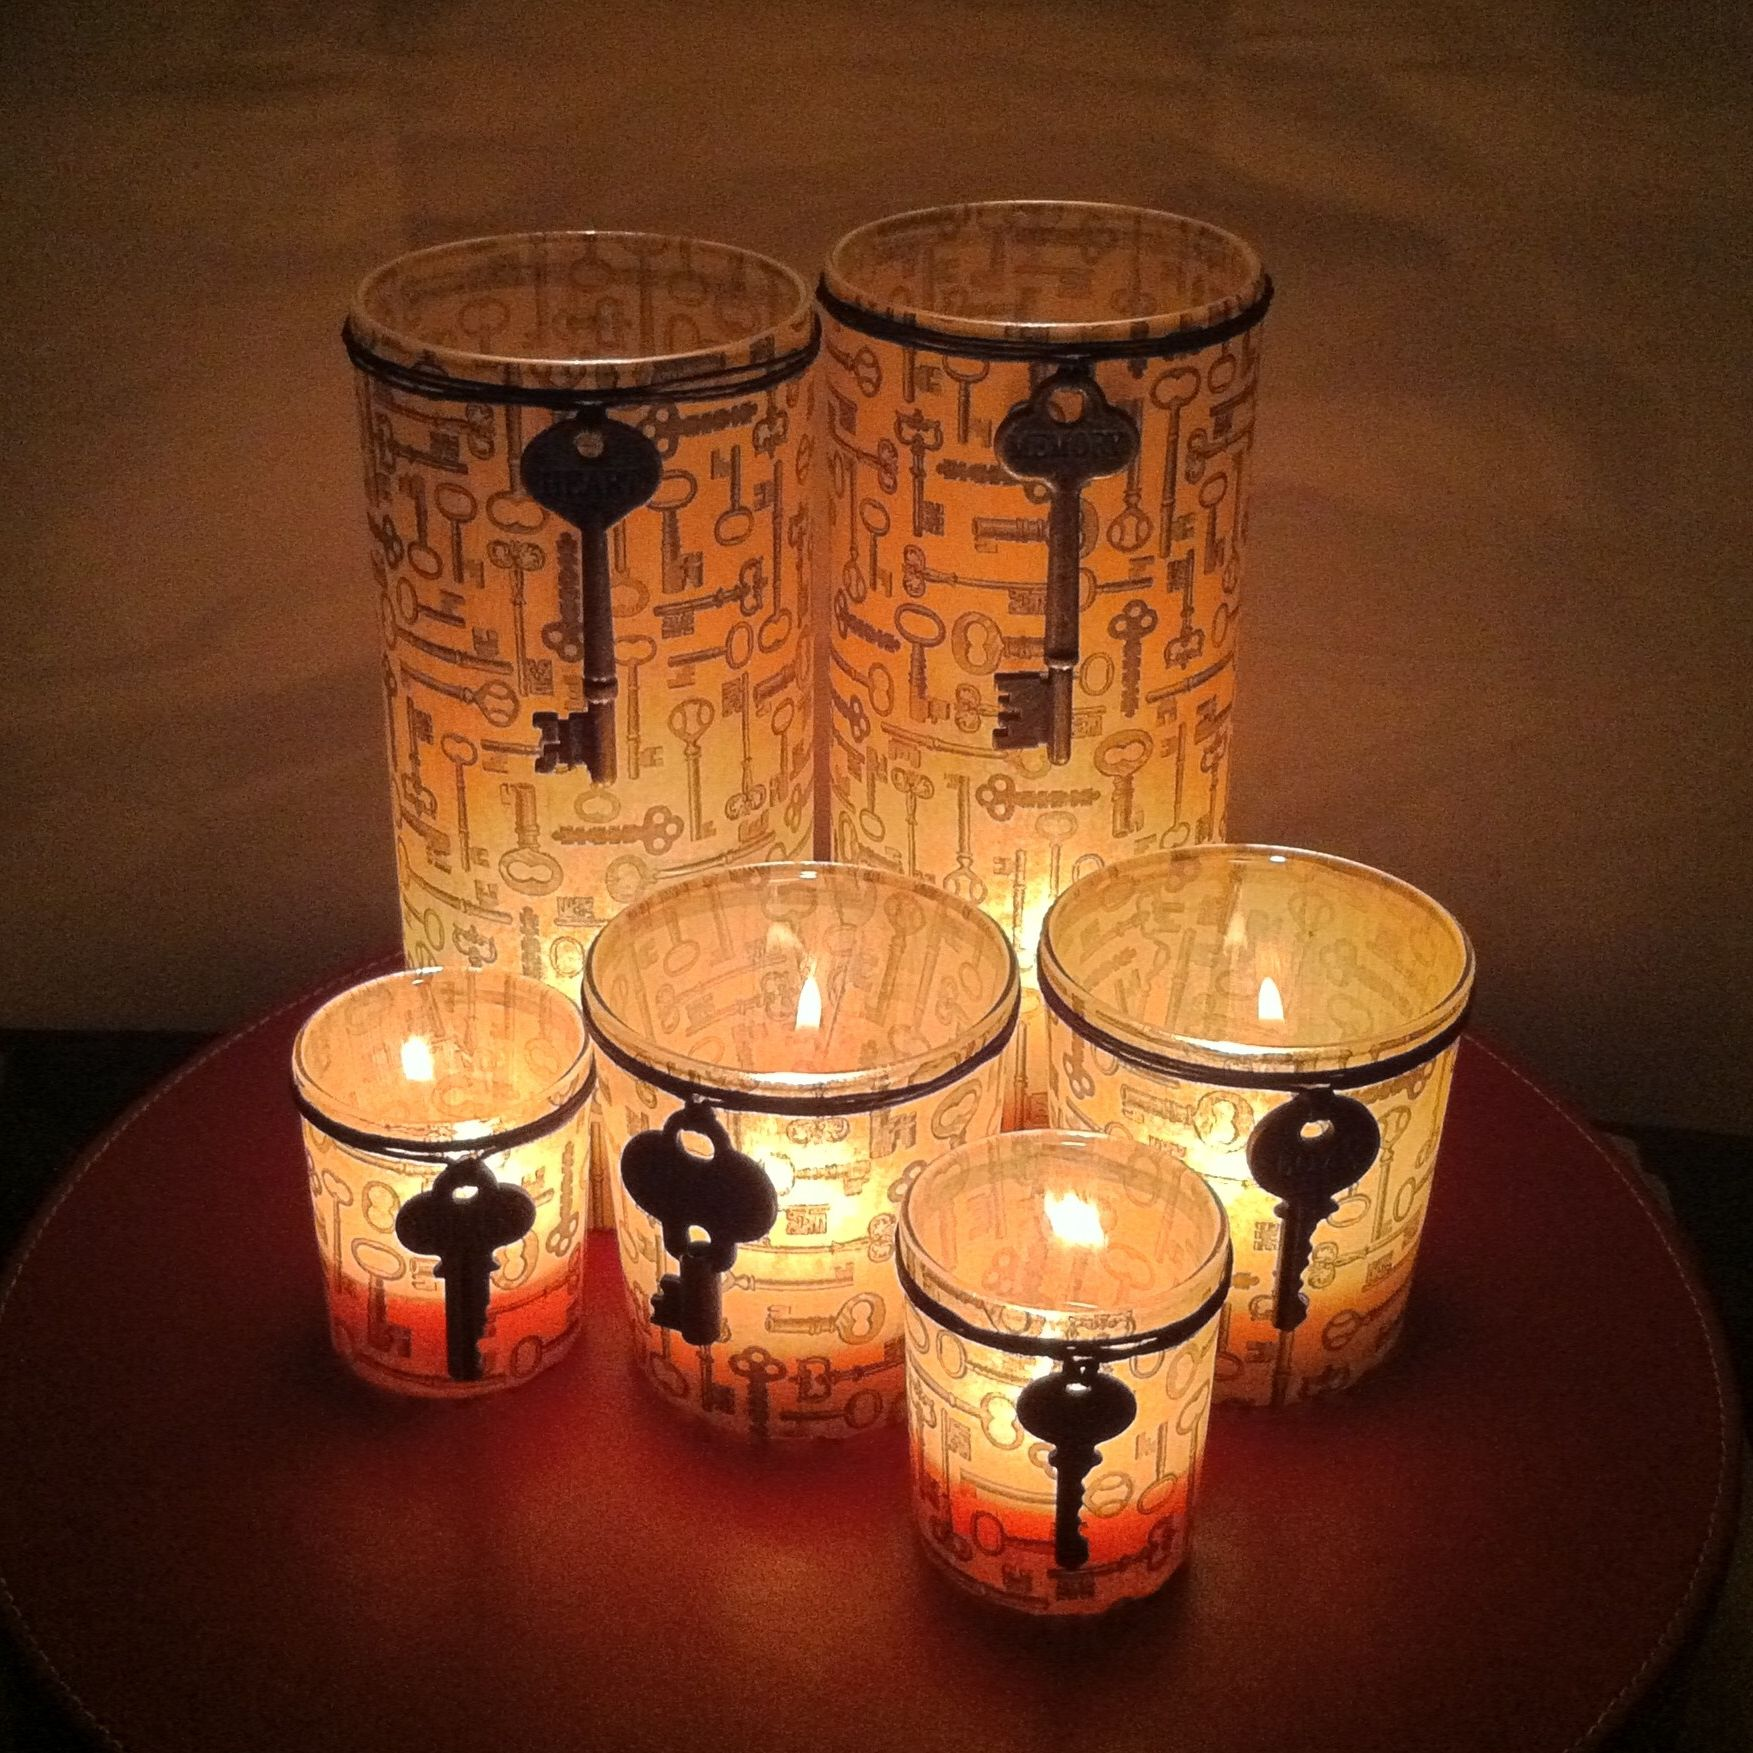 Decorating Glass Candle Holders Decorating Glass Candle Holders Glass Candle Holders Candle Holders